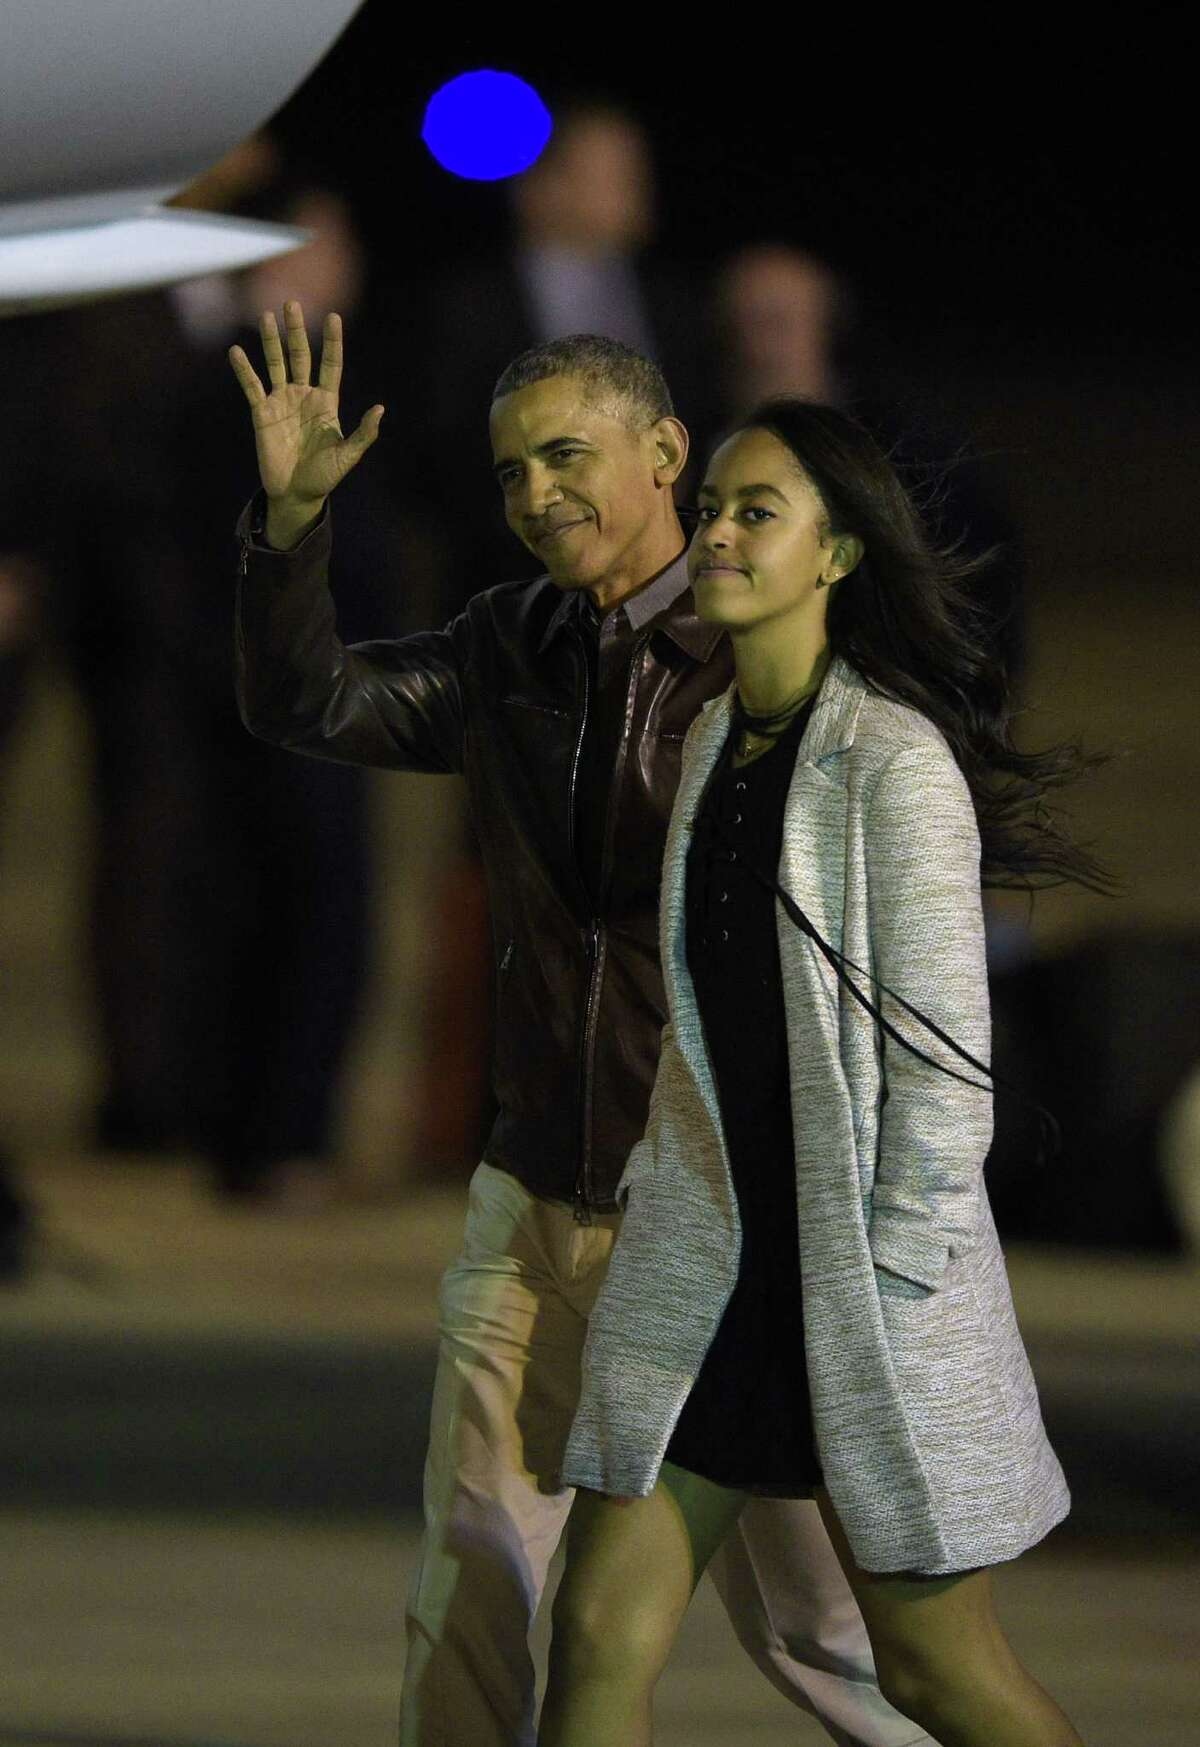 US President Barack Obama waves next to his daughter Malia before boarding the Air Force One and head back to United States, at Ministro Pistarini International Airport in Ezeiza, Buenos Aires, Argentina on March 25, 2016. AFP PHOTO / JUAN MABROMATAJUAN MABROMATA/AFP/Getty Images